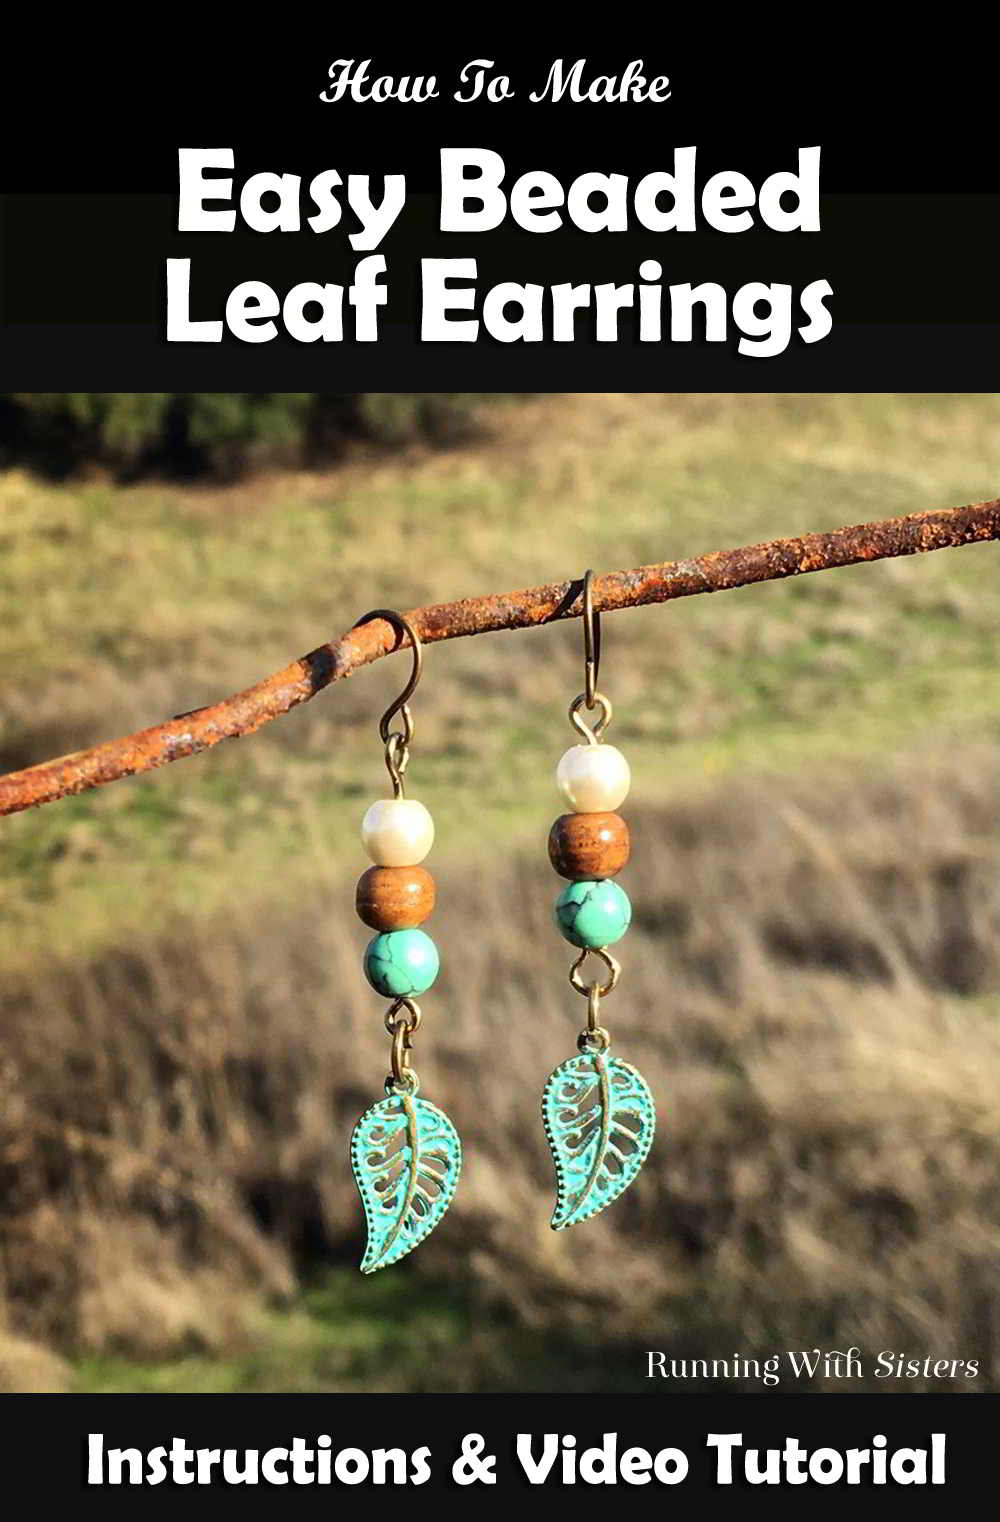 Learn to make your own DIY beaded earrings! In this video tutorial we'll show you how to make this pair of easy Beaded Leaf Earrings. Great gift craft!